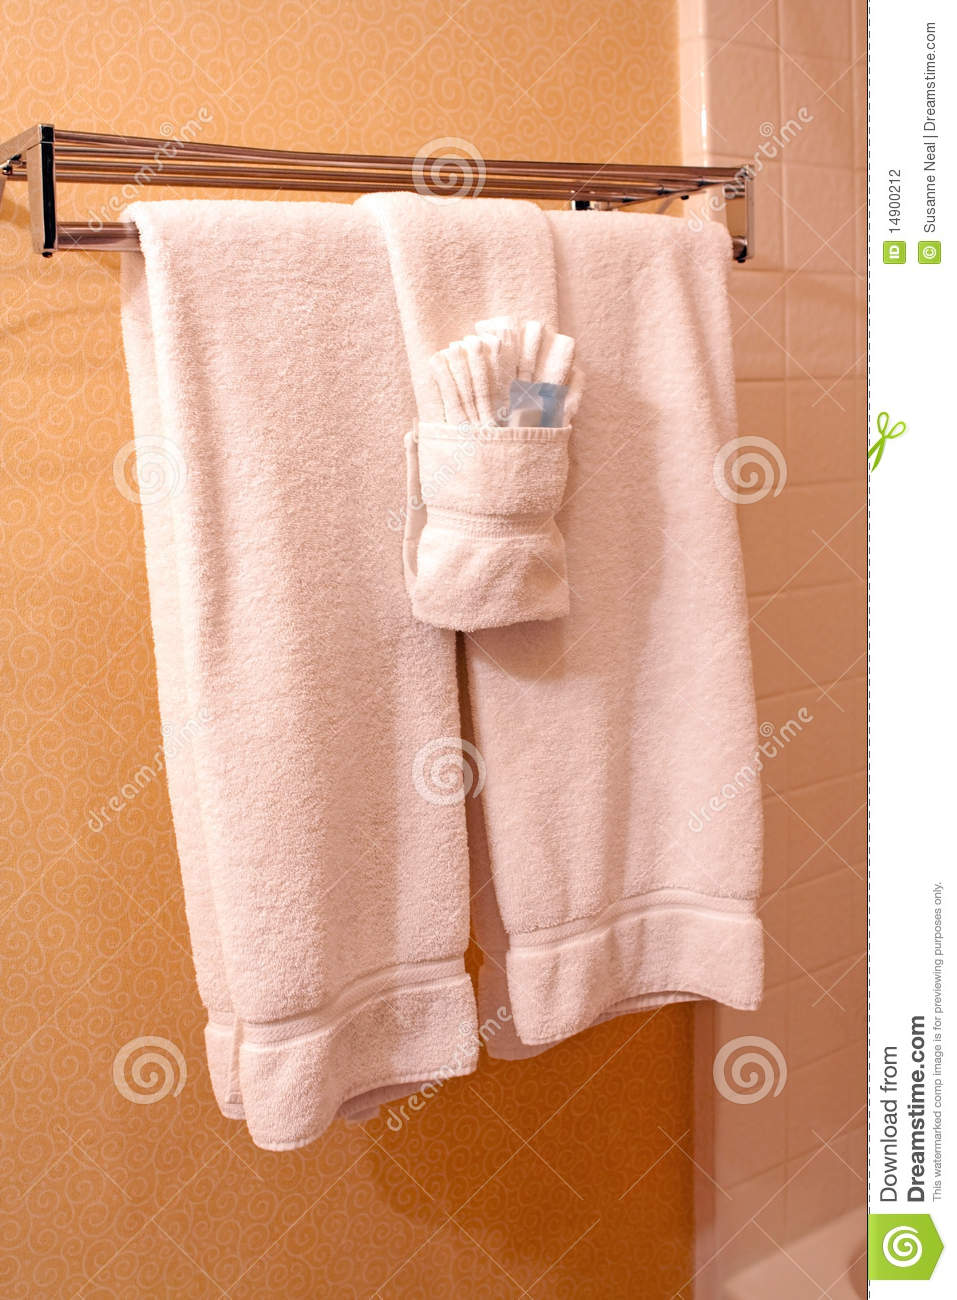 Folded Hanging Towel Folded Hanging Towel K Nongzico